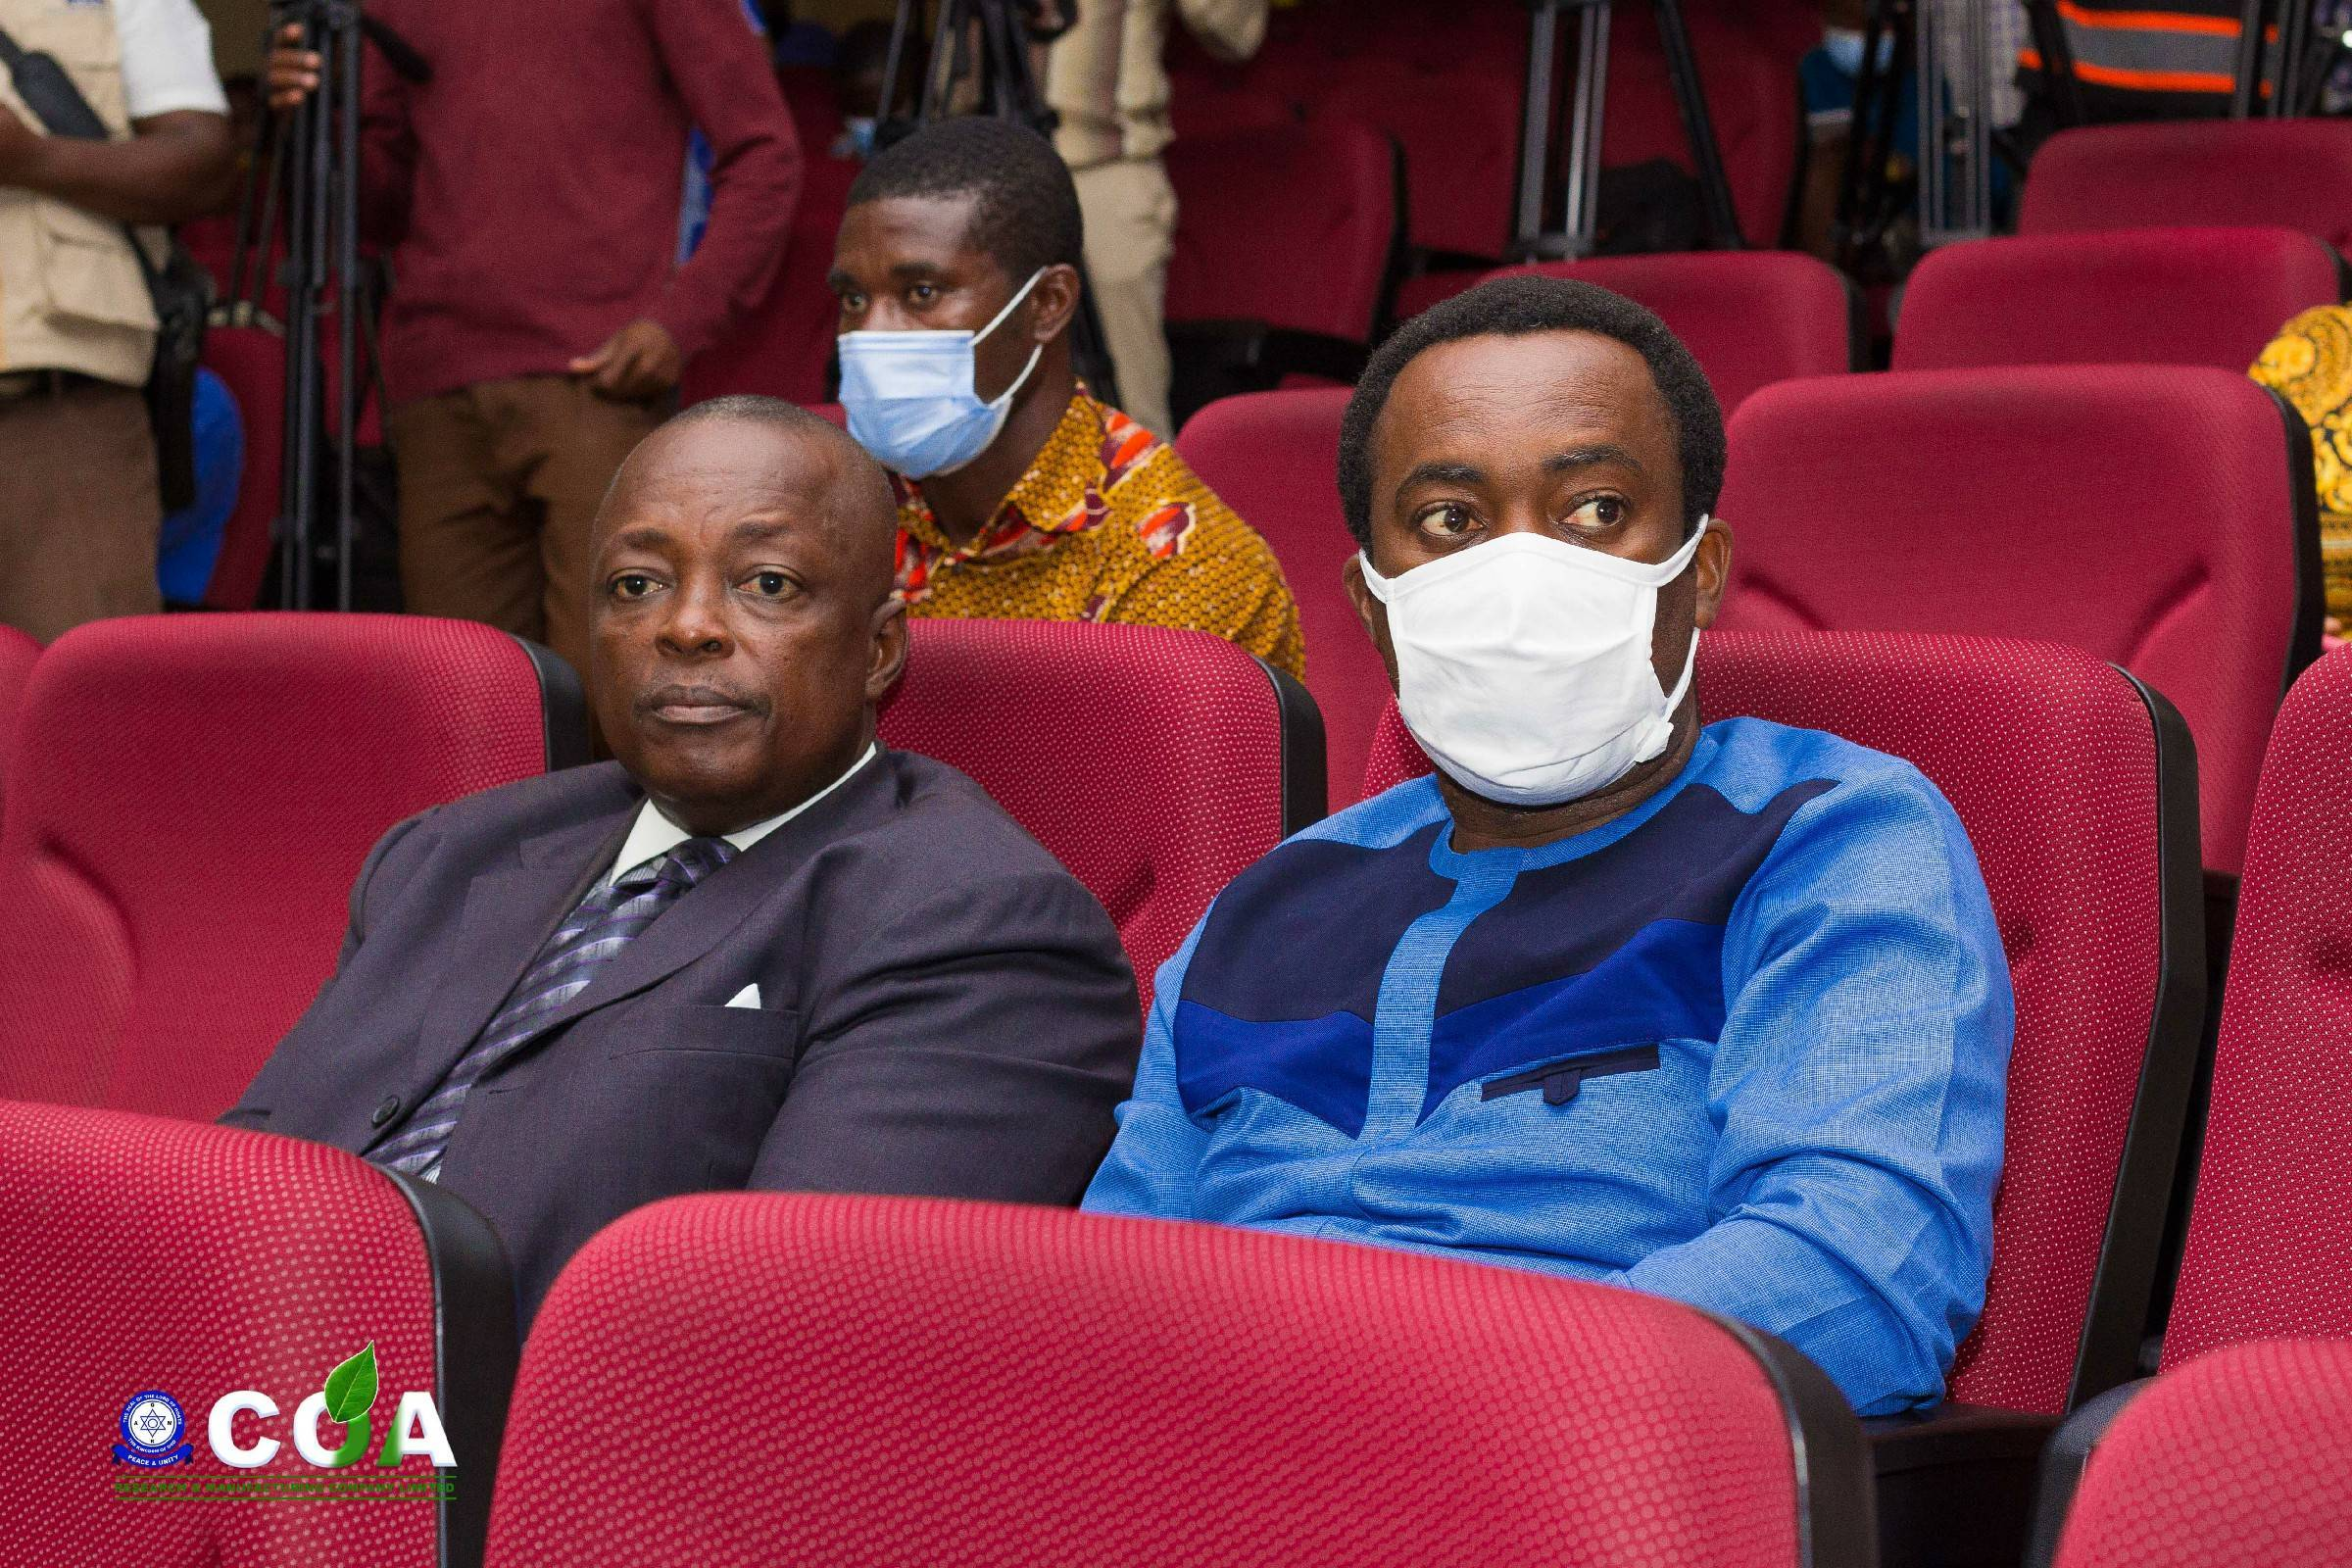 Our Administrator, Dr. Mathew Nsiah Agyeman with Dr. Mawuli